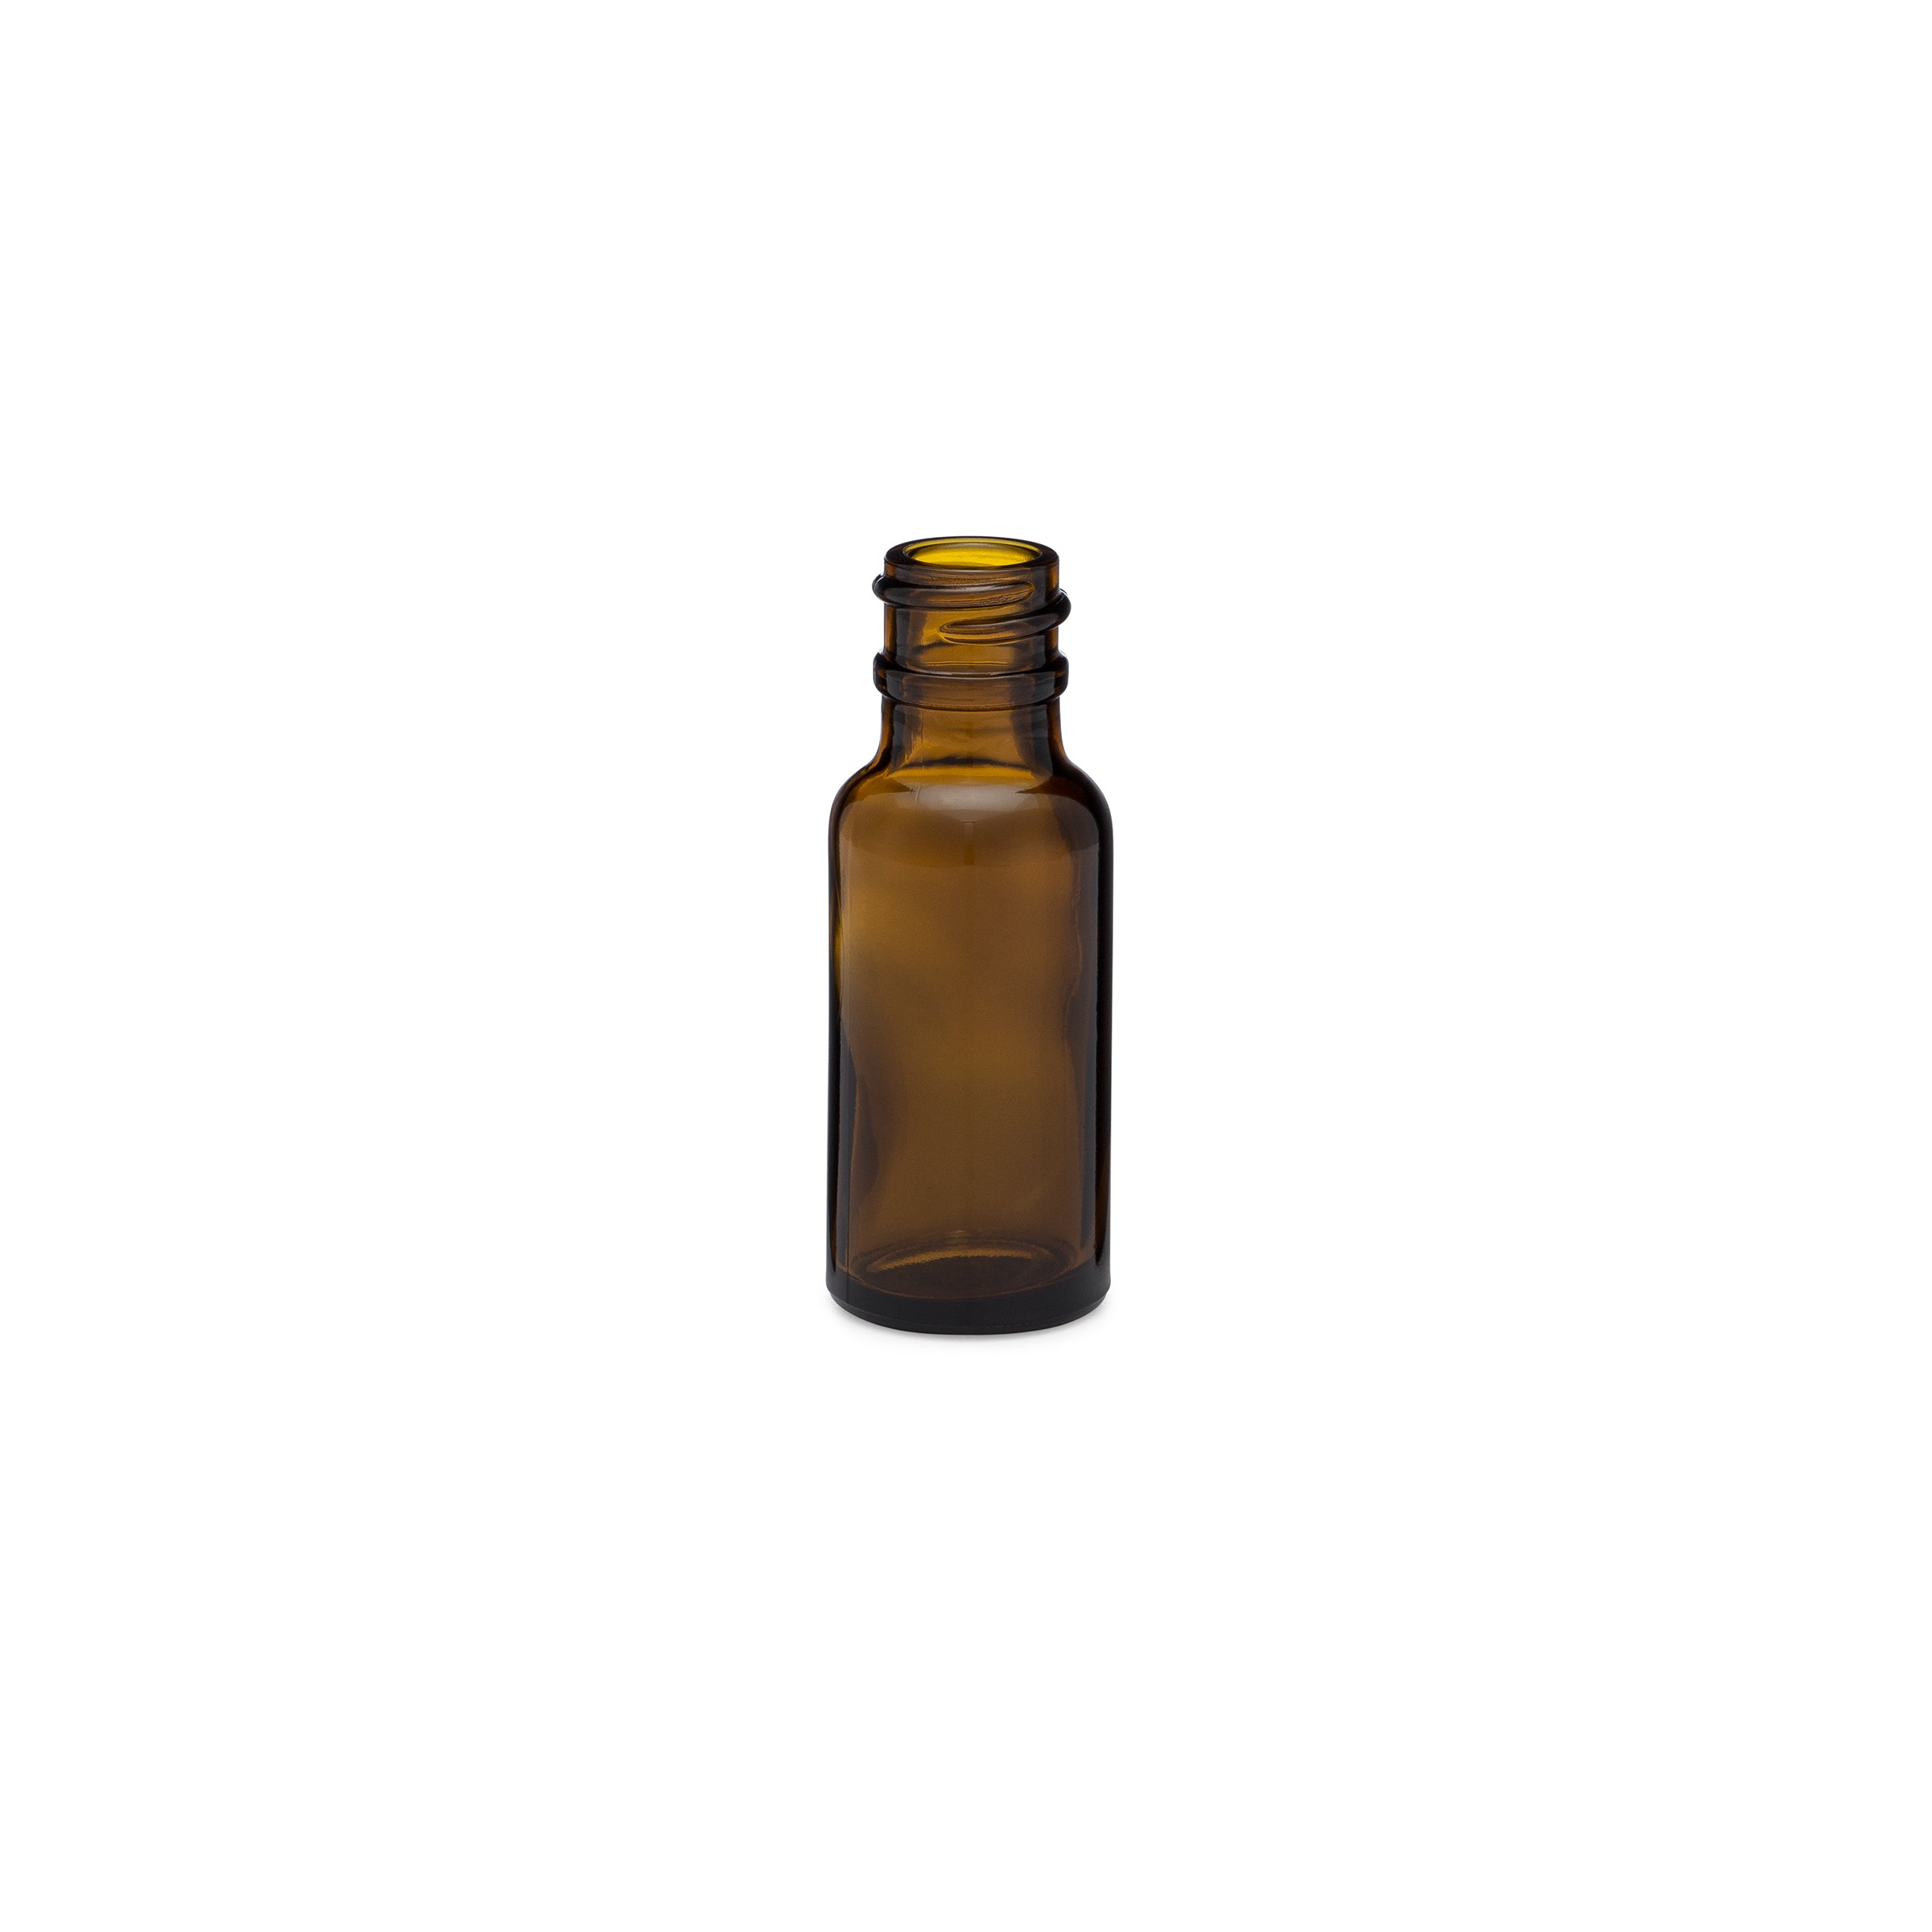 0.5oz/15ml Amber Boston Round Bottle